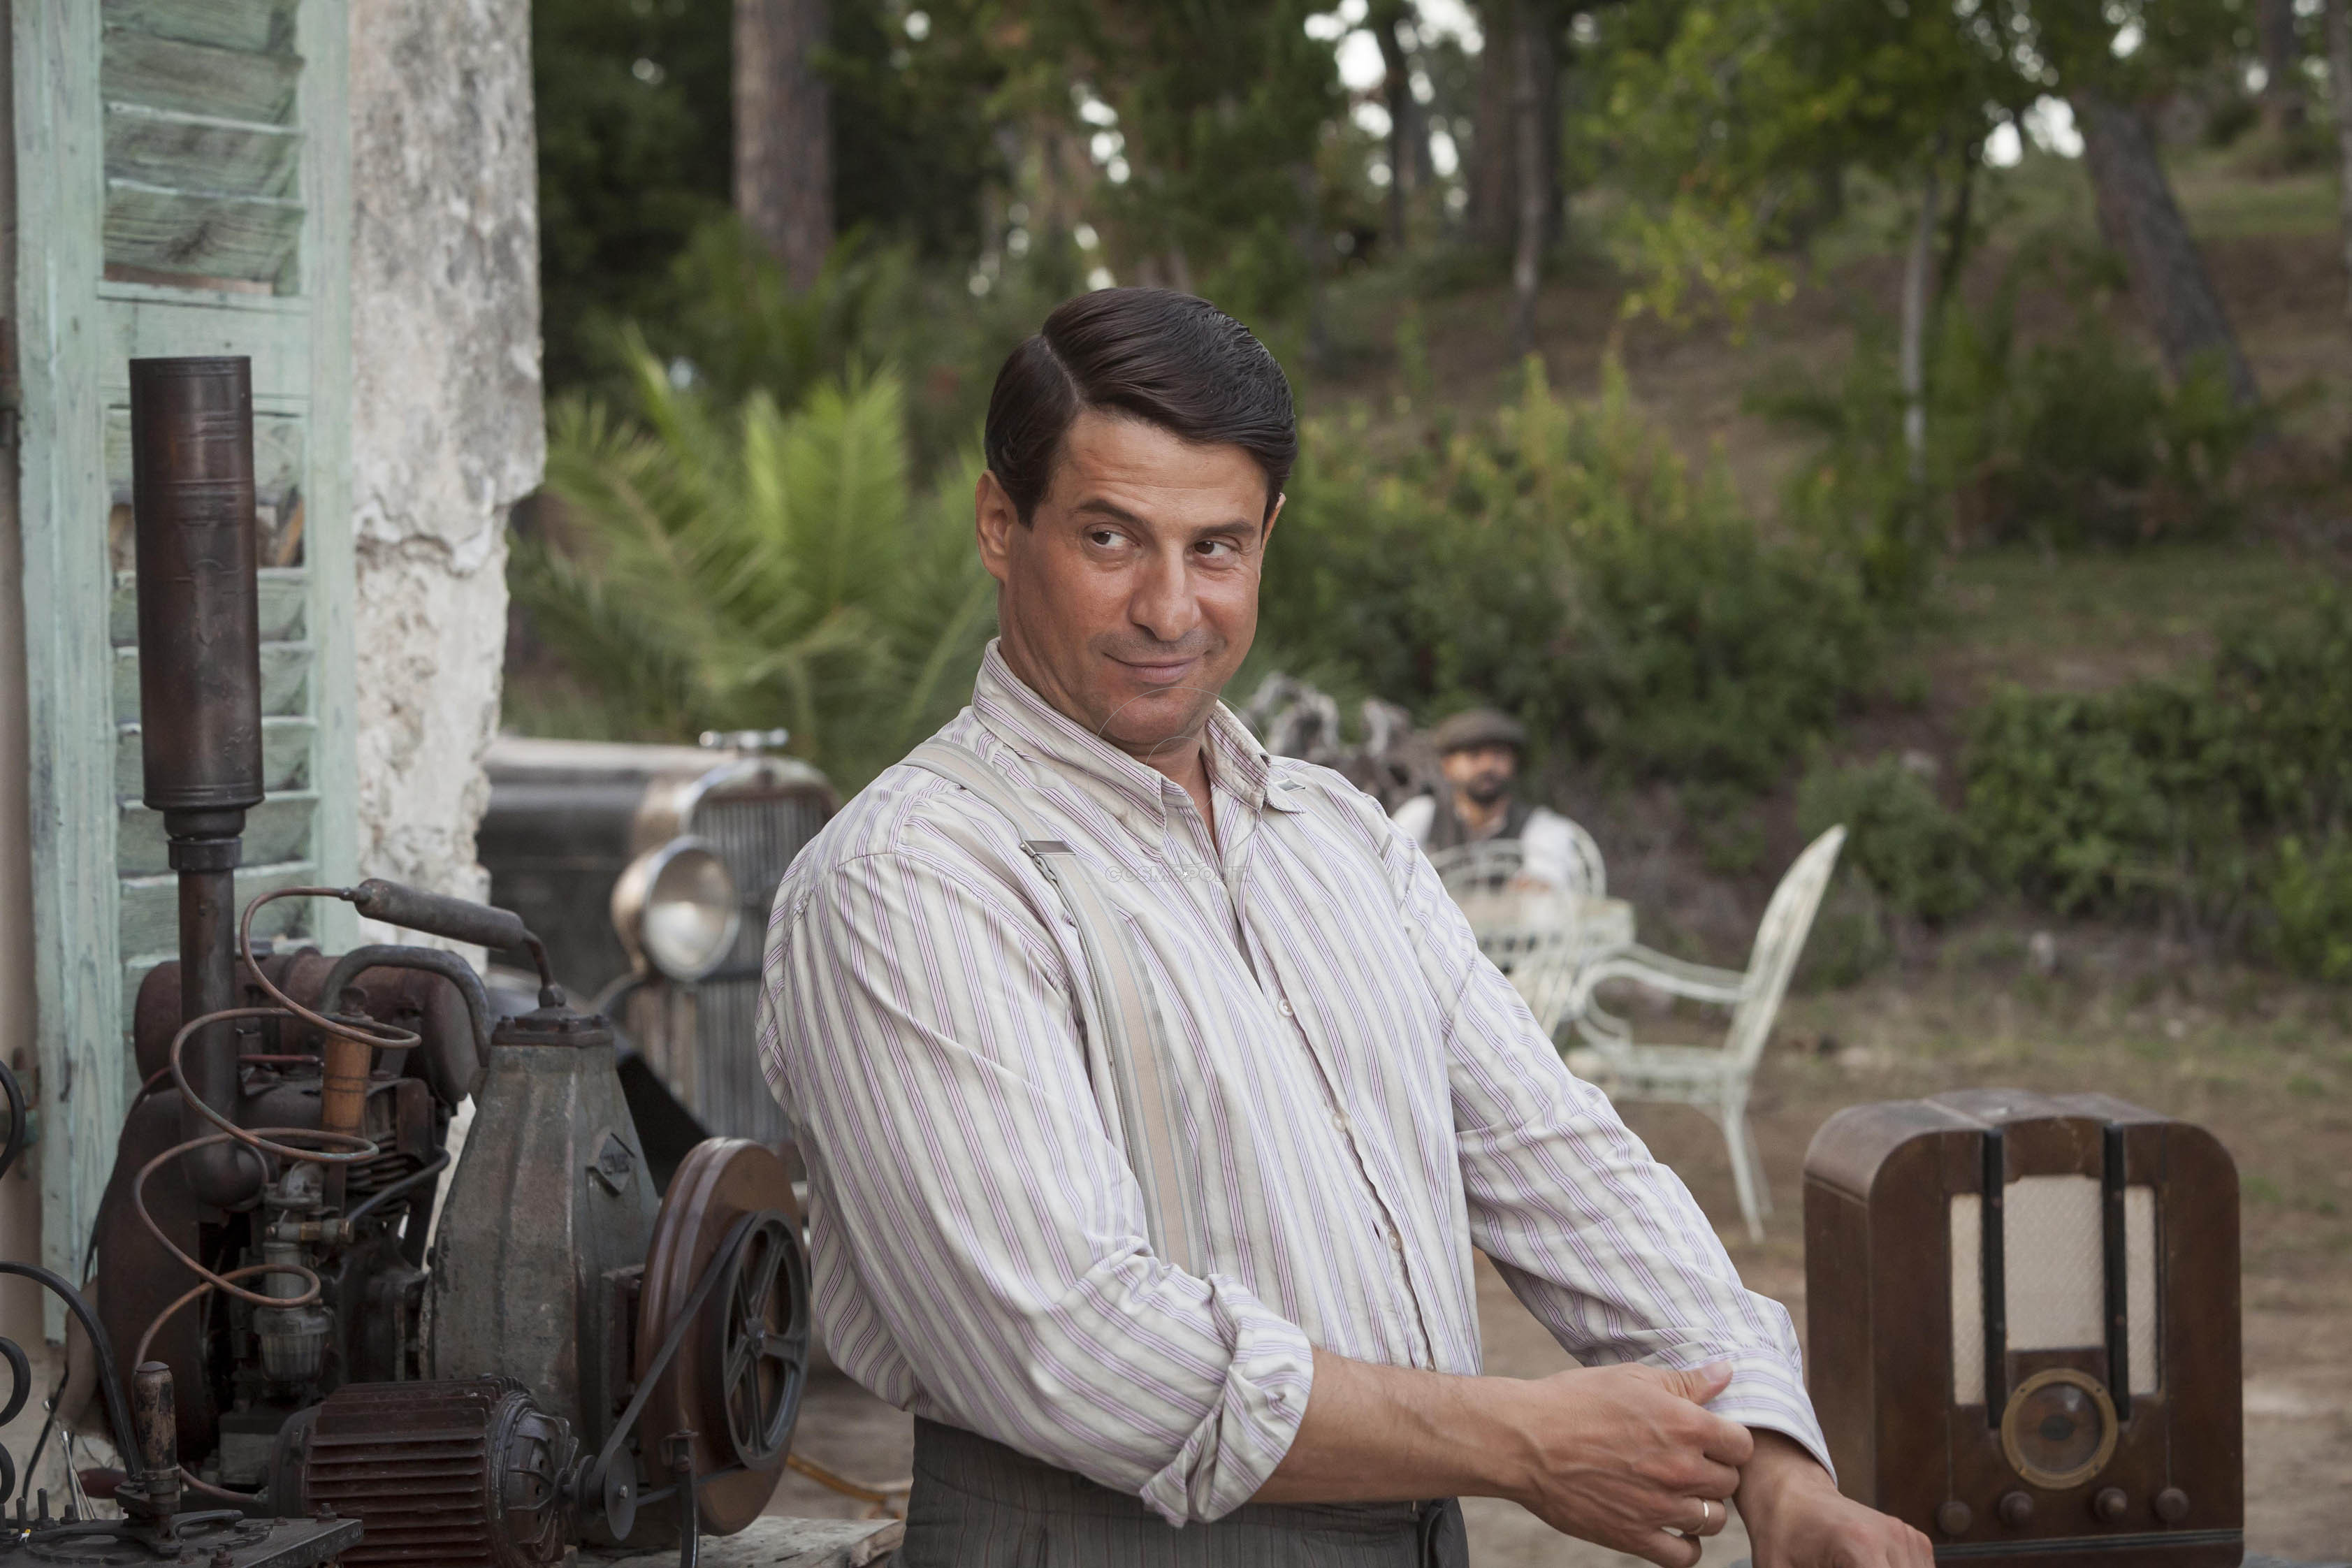 THE DURRELLS  EPISODE 5 Pictured:ALEXIS GEORGOULIS as Spiro. This image is the copyright of ITV and must only be used in relation the THE DURRELLS on ITV.